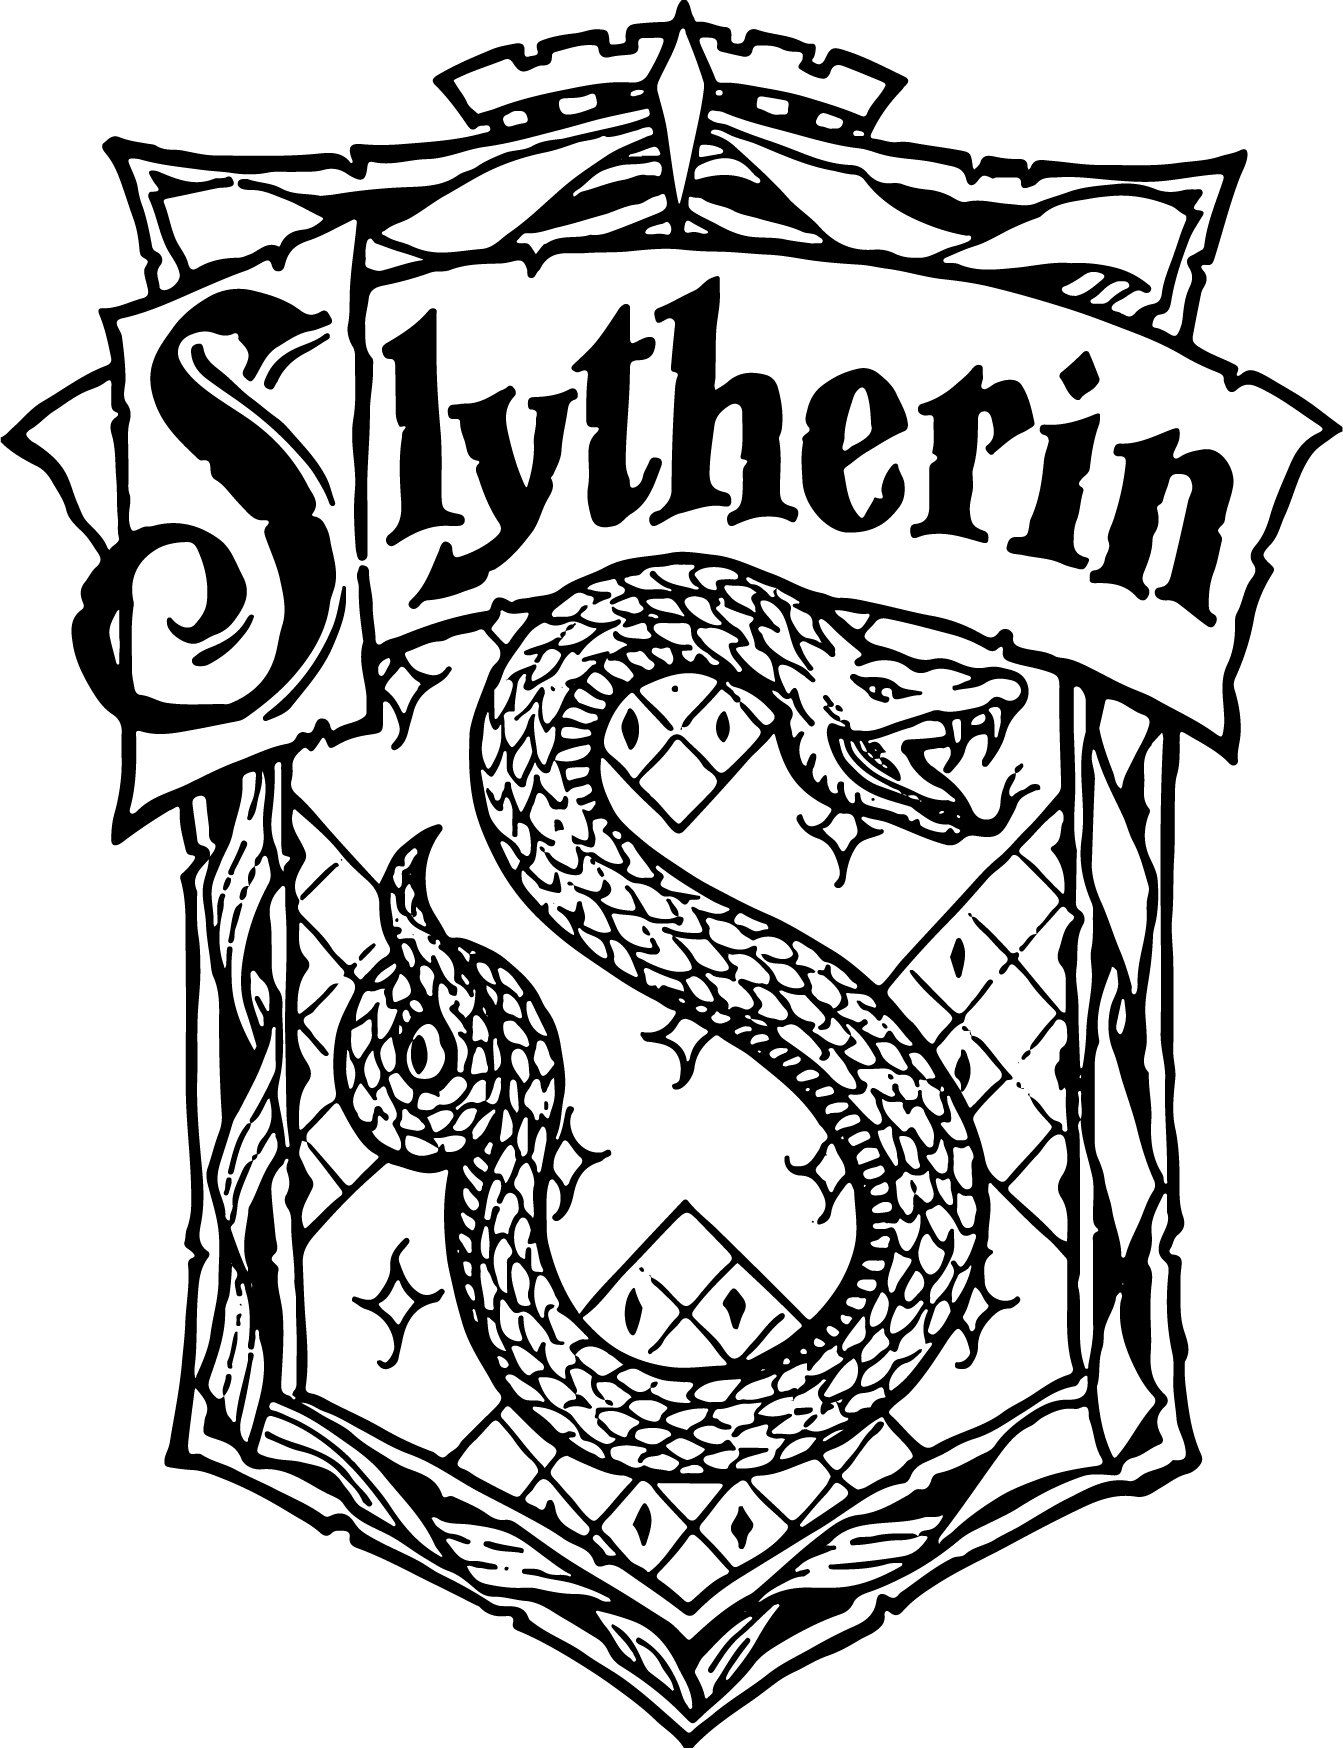 Slytherin Crest Emblem Badge Svg Harry Potter Hogwart S House